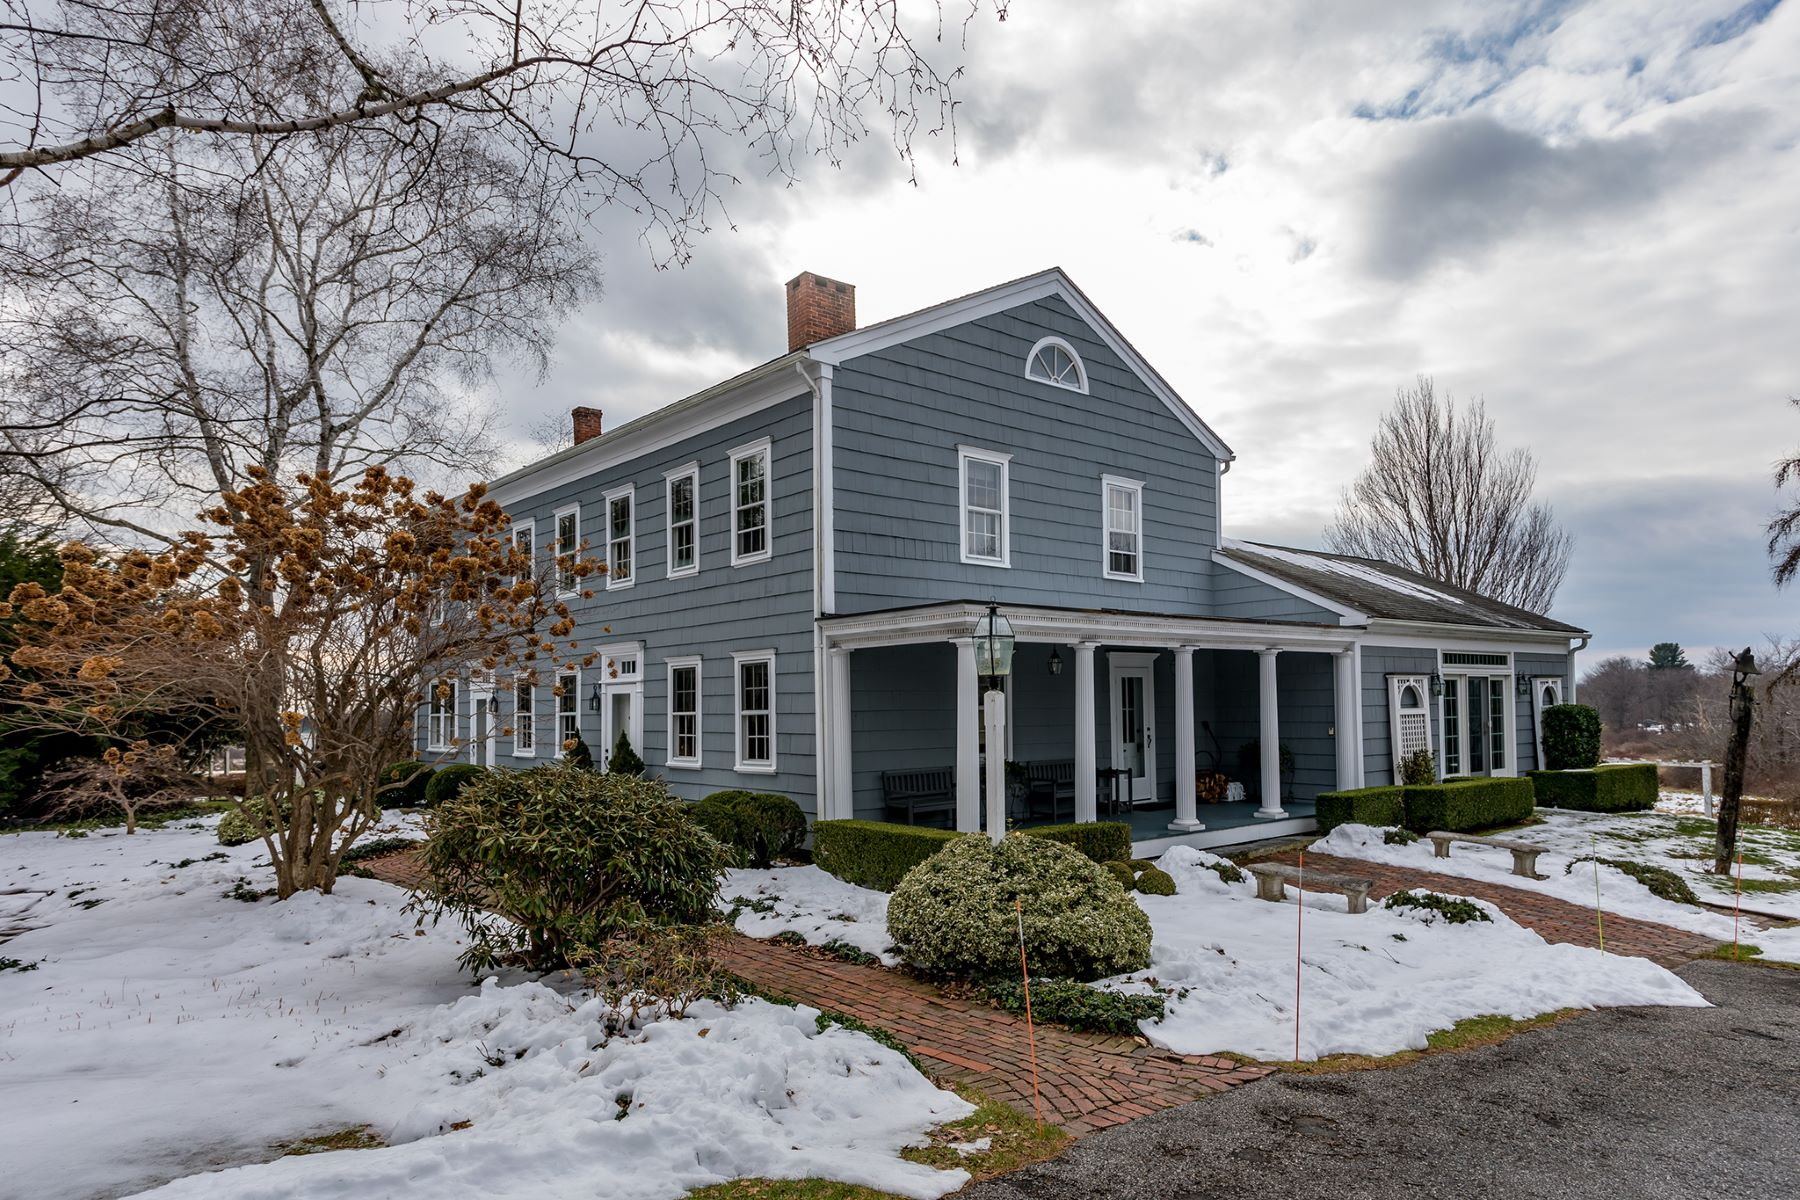 Casa Unifamiliar por un Venta en Authentic circa 1760 Colonial Home 499 Maple Street Litchfield, Connecticut 06759 Estados Unidos